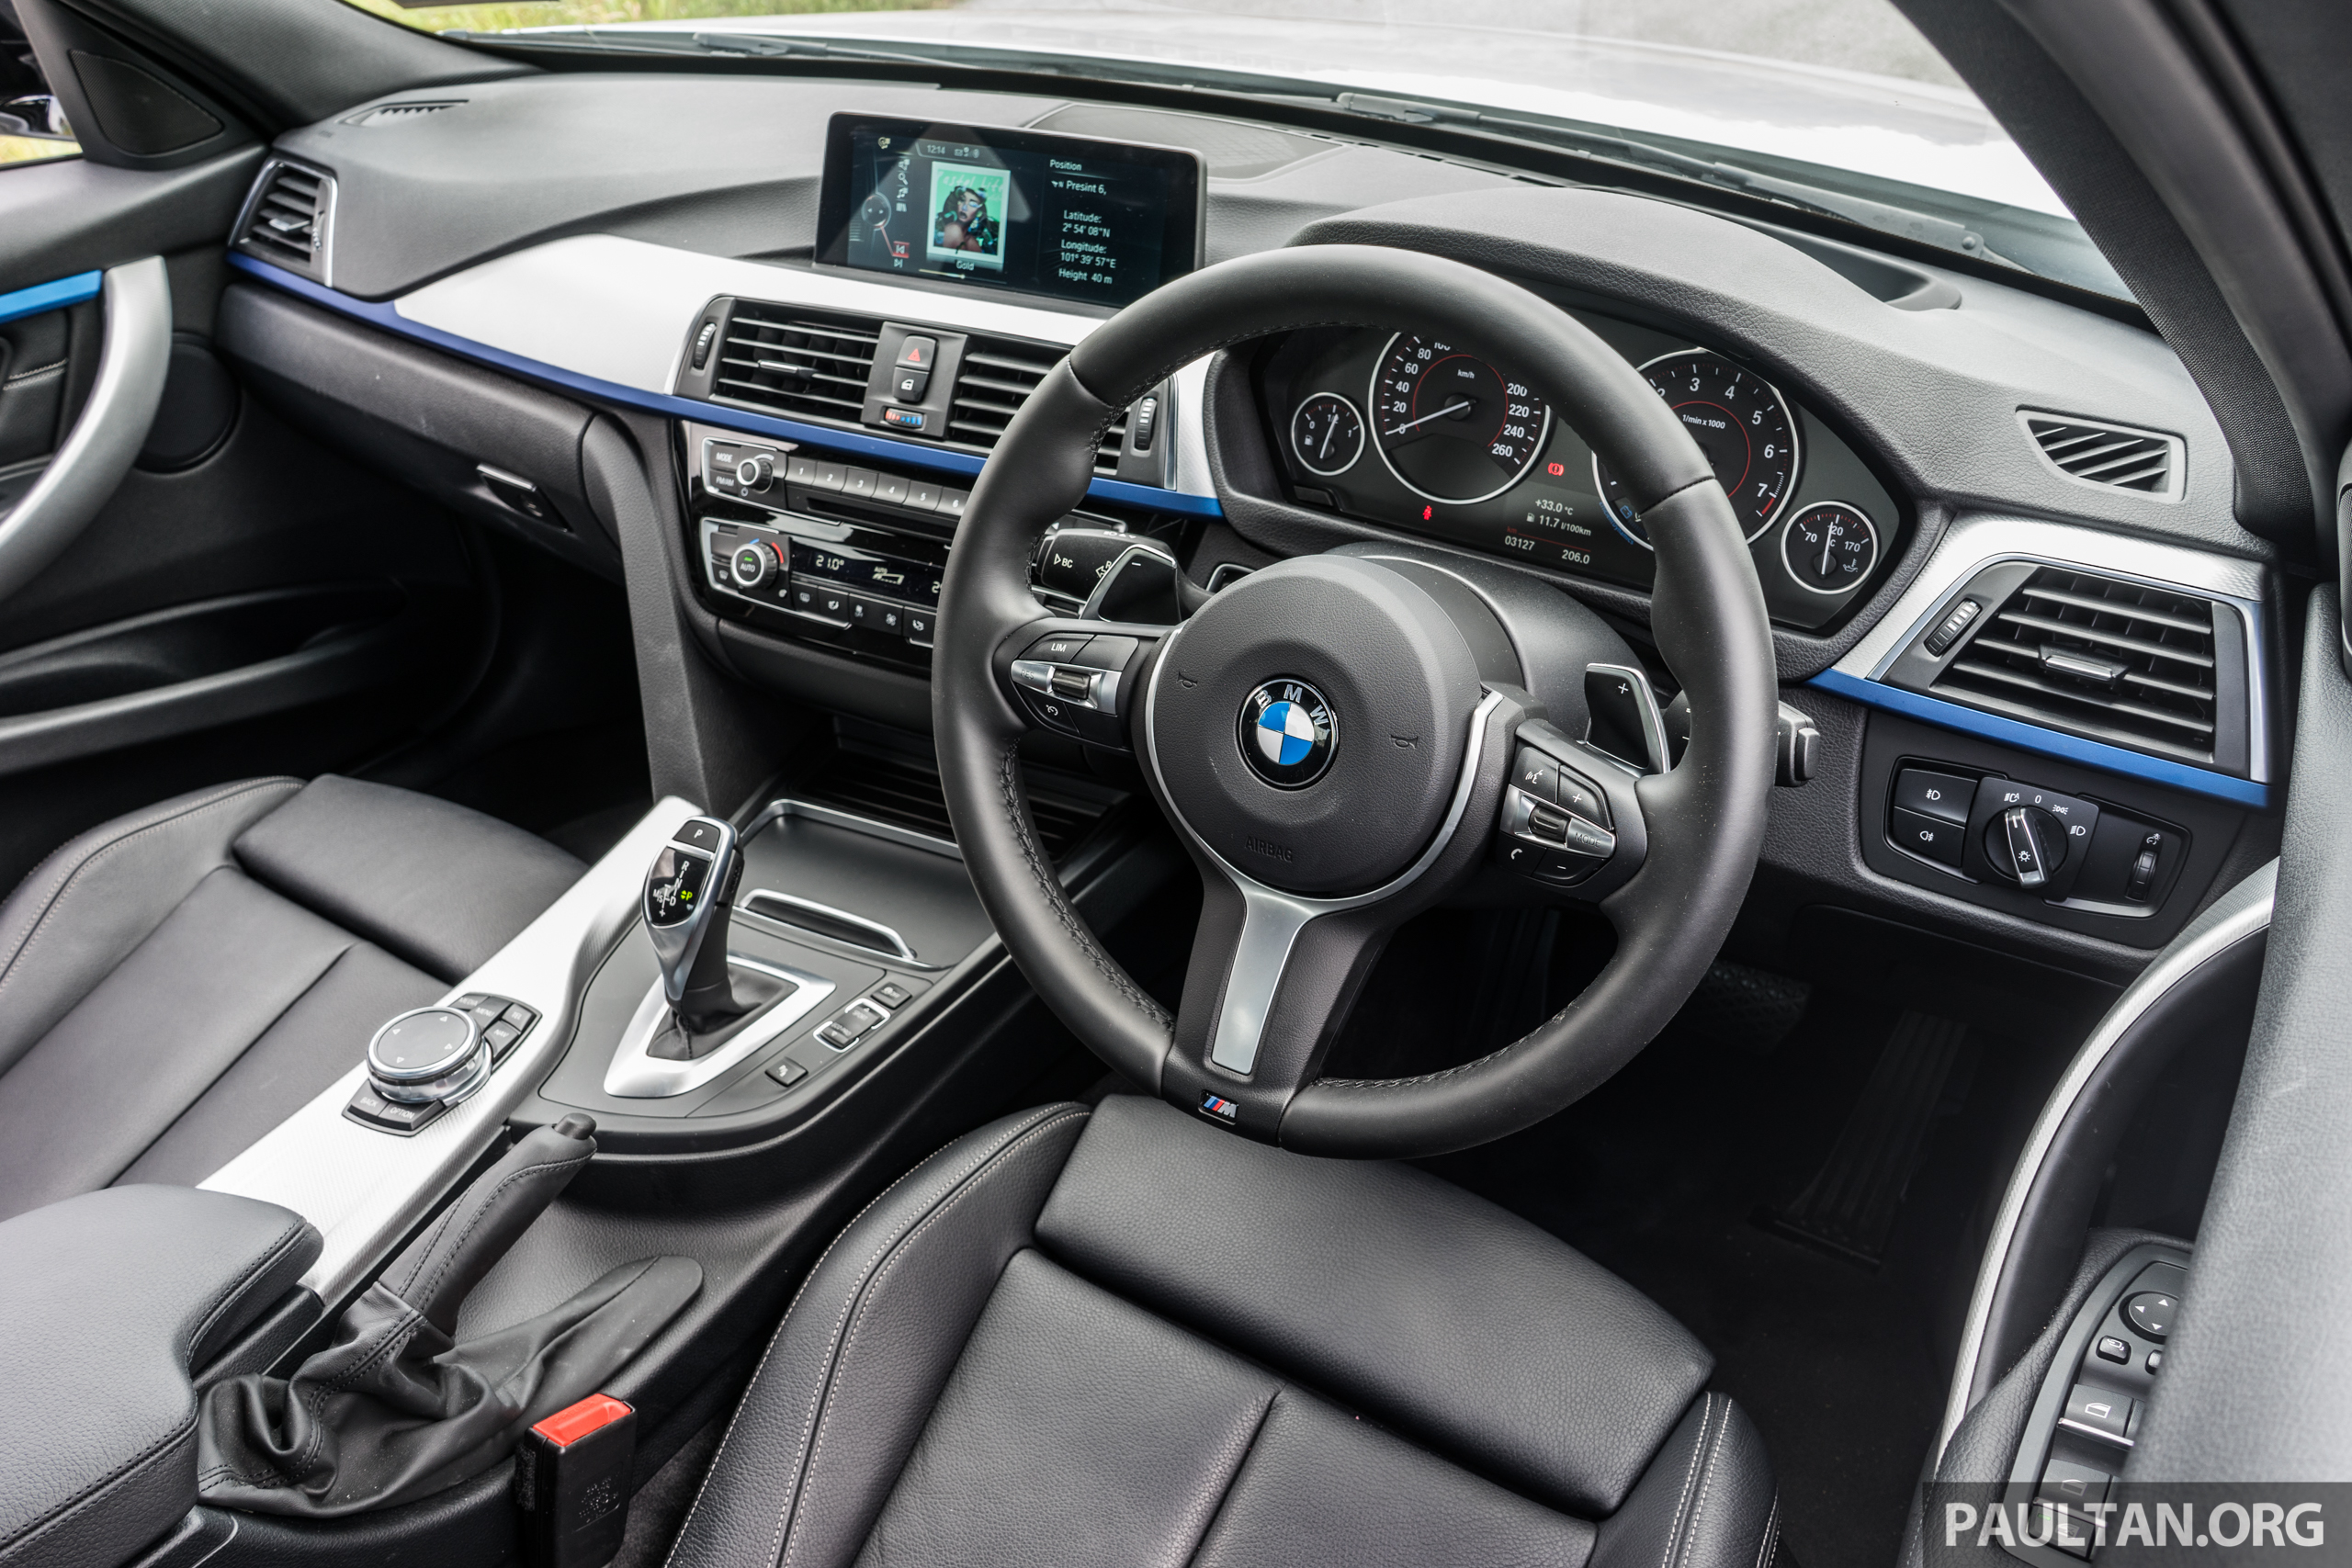 Driven 2016 Bmw 330i Can The Best Still Keep Up Paul Tan Image 325i Start 468373